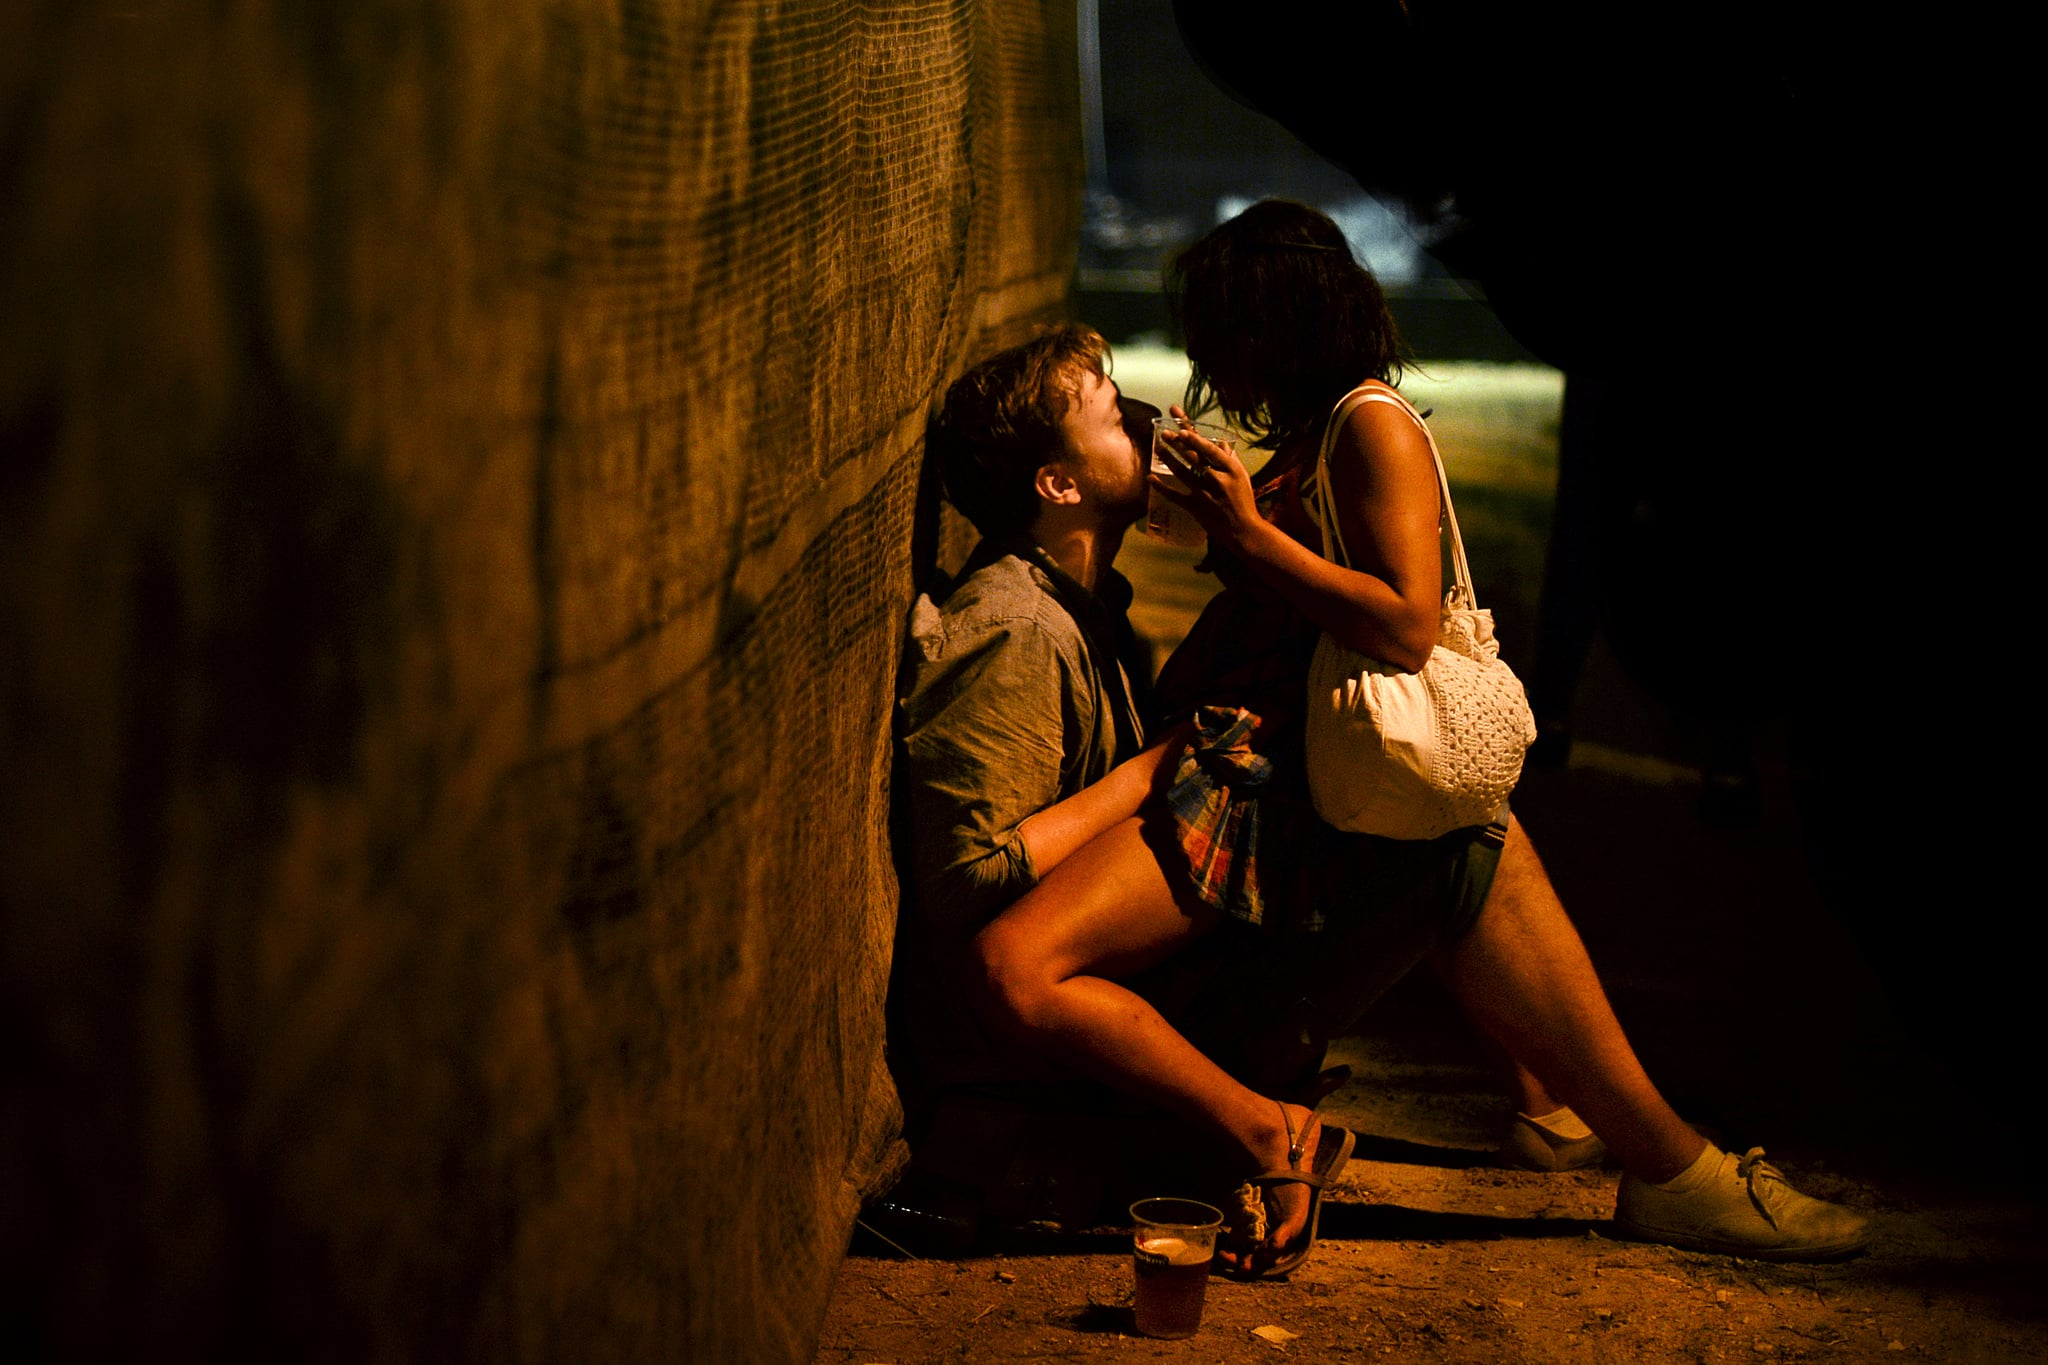 A couple had a moment together at a music festival in Portugal.